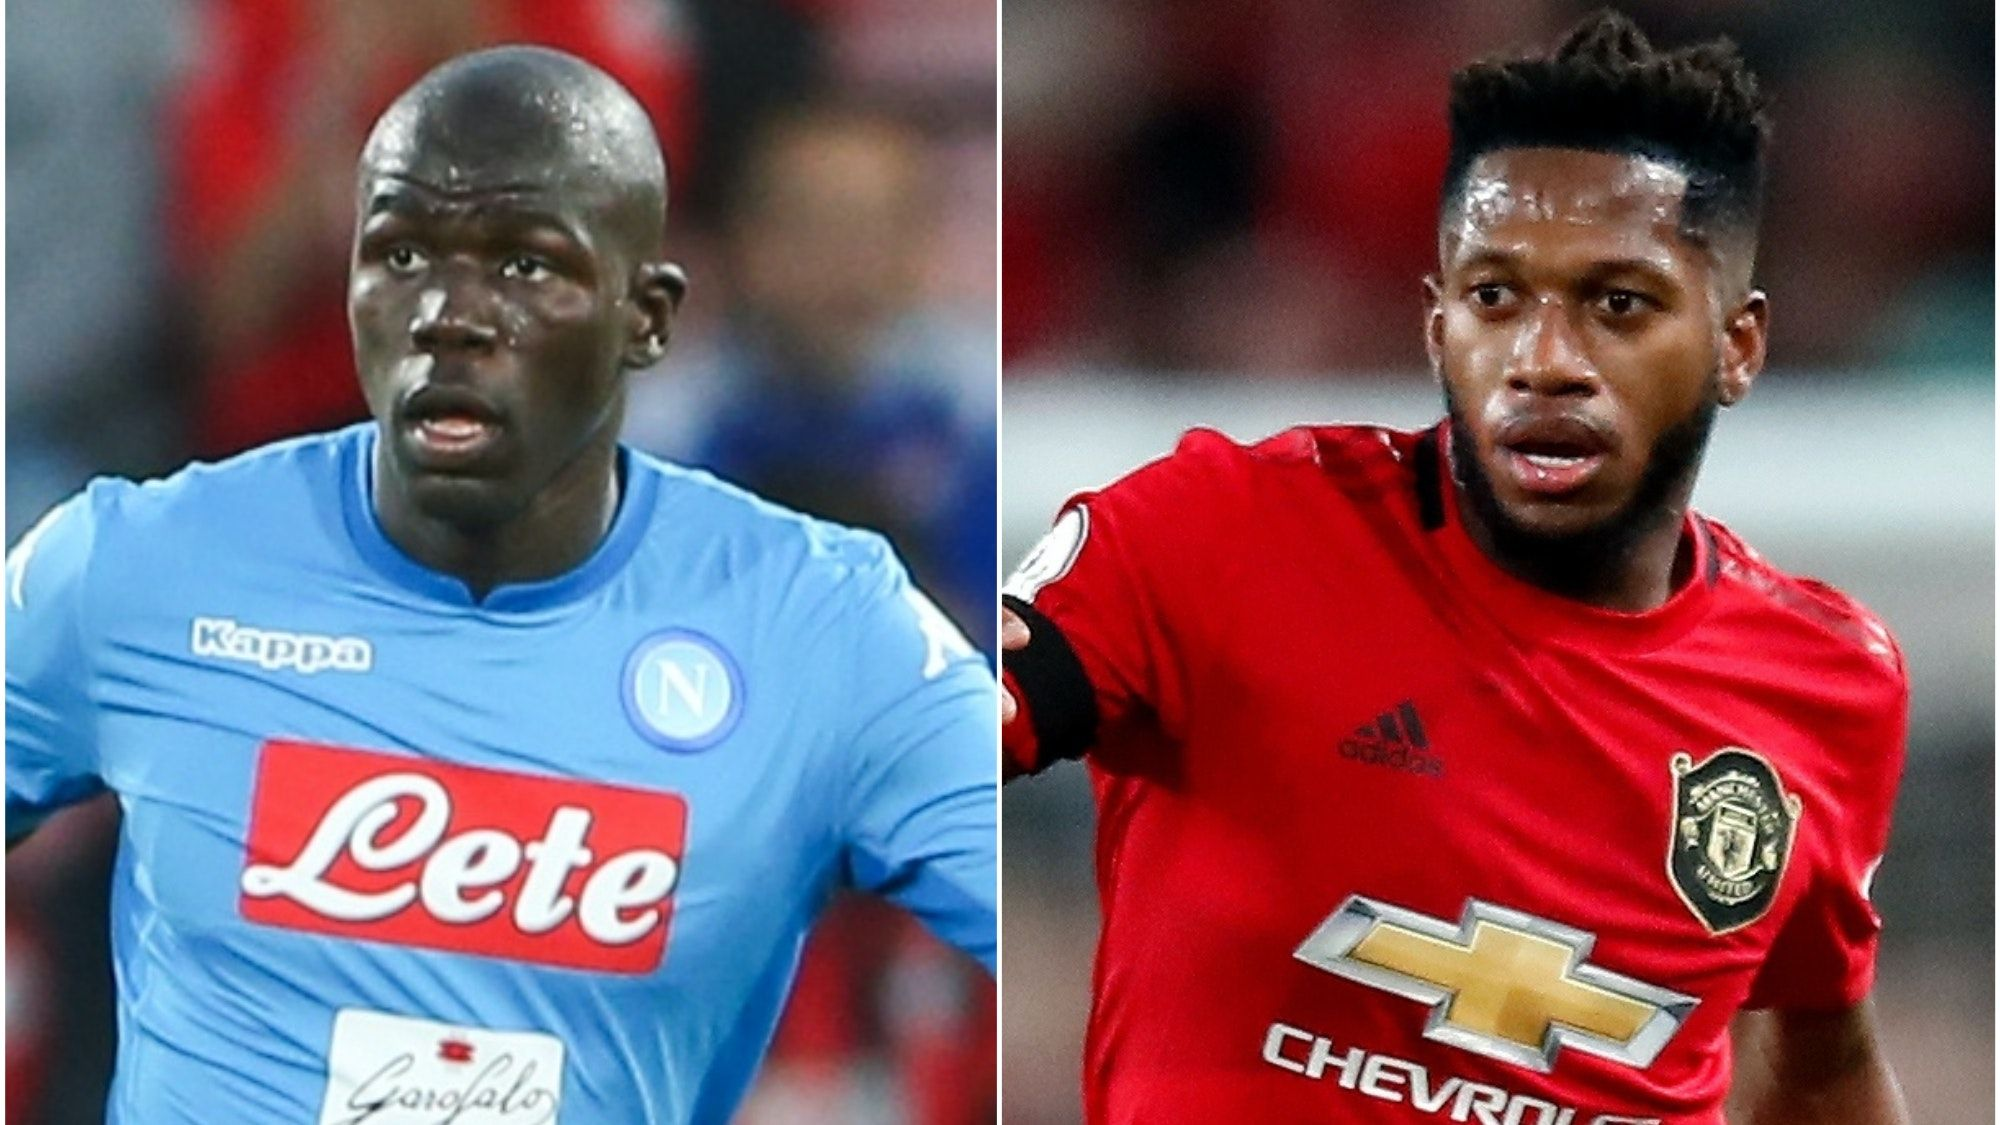 Football Rumours From The Media In 2020 Football Manchester City Sports